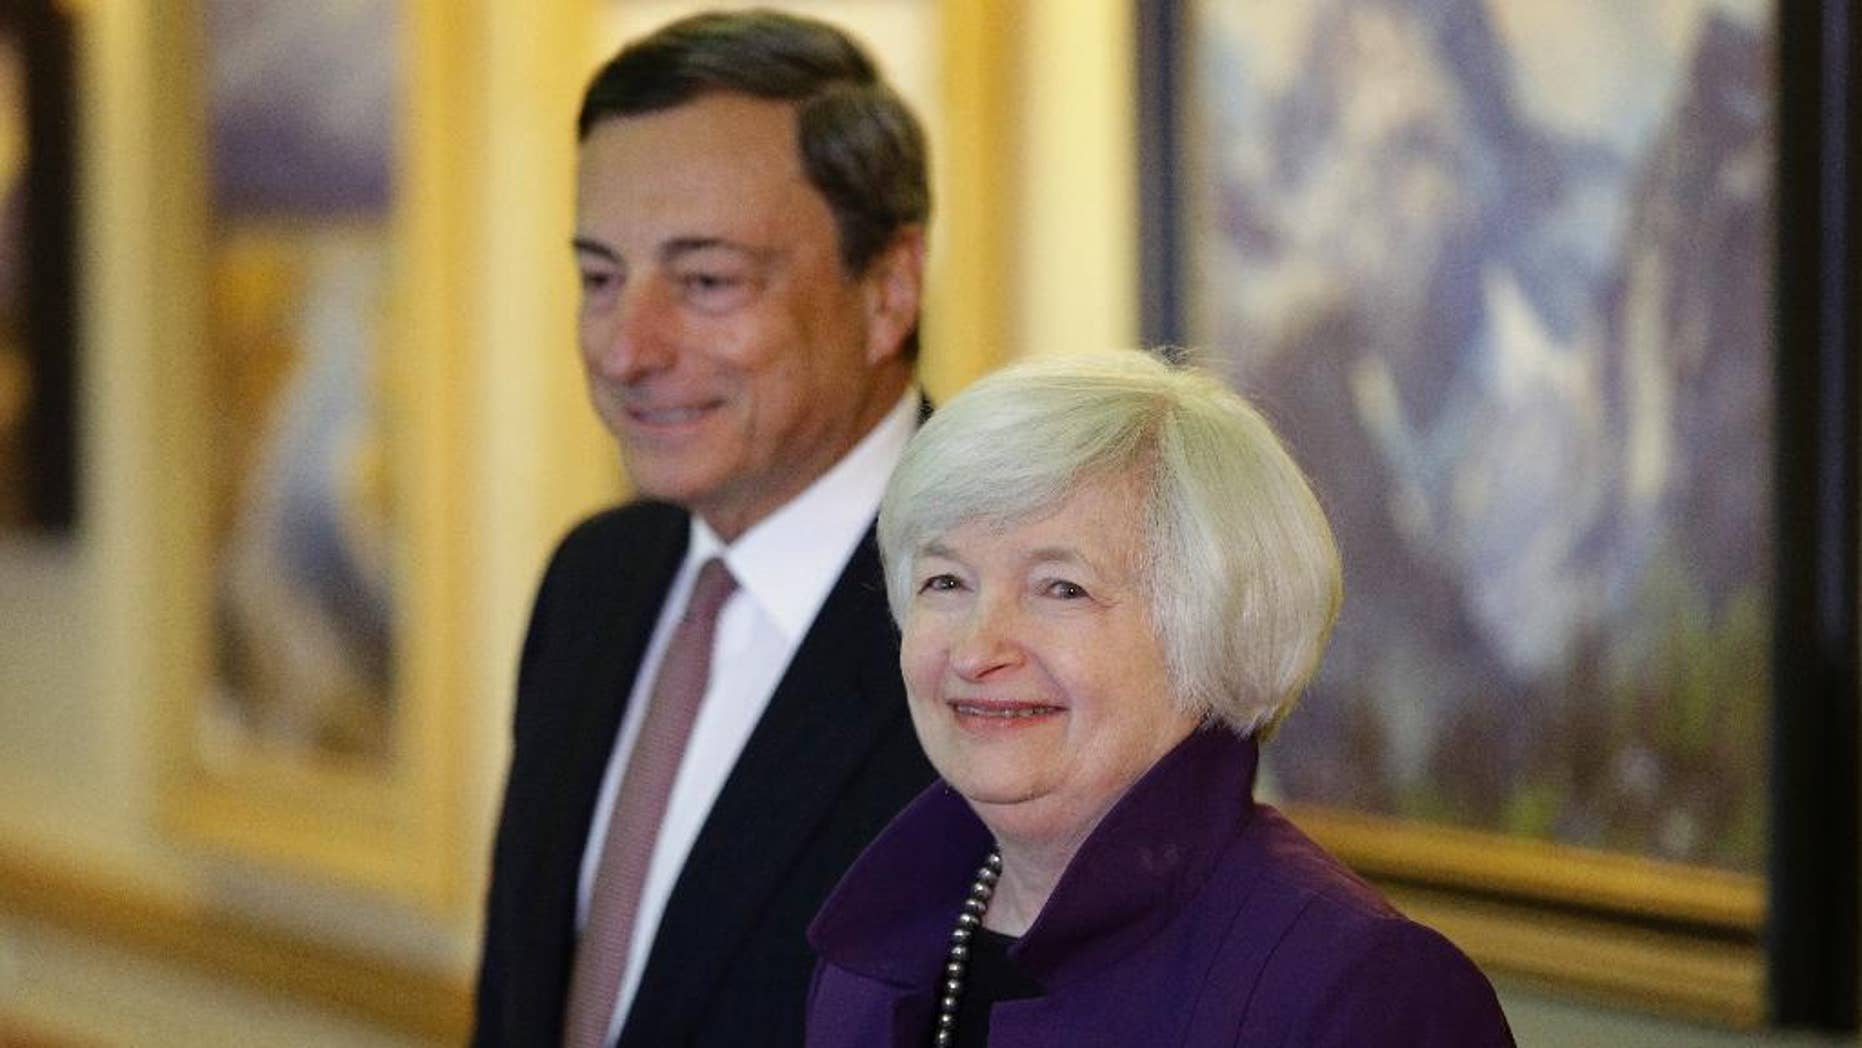 FILE - In this Aug. 22, 2014 file photo, Federal Reserve Chair Janet Yellen, right, and European Central Bank President Mario Draghi walk together during the Jackson Hole Economic Policy Symposium at the Jackson Lake Lodge in Grand Teton National Park near Jackson, Wyo. Record low interest rates were meant to be a temporary response to the global financial crisis. But eight years later, rates are still near zero in much of the developed world - and some experts are warning of long-term side effects. The Federal Reserve lowered its short-term benchmark - which determines the cost of overnight lending between banks - to between zero and 0.25 percent in December 2008. The European Central Bank reached zero in March and the Bank of Japan in late 2010. Just last week, the Bank of England cut its benchmark rate to 0.25 percent and indicated it could bring it closer to zero. (AP Photo/John Locher, file)